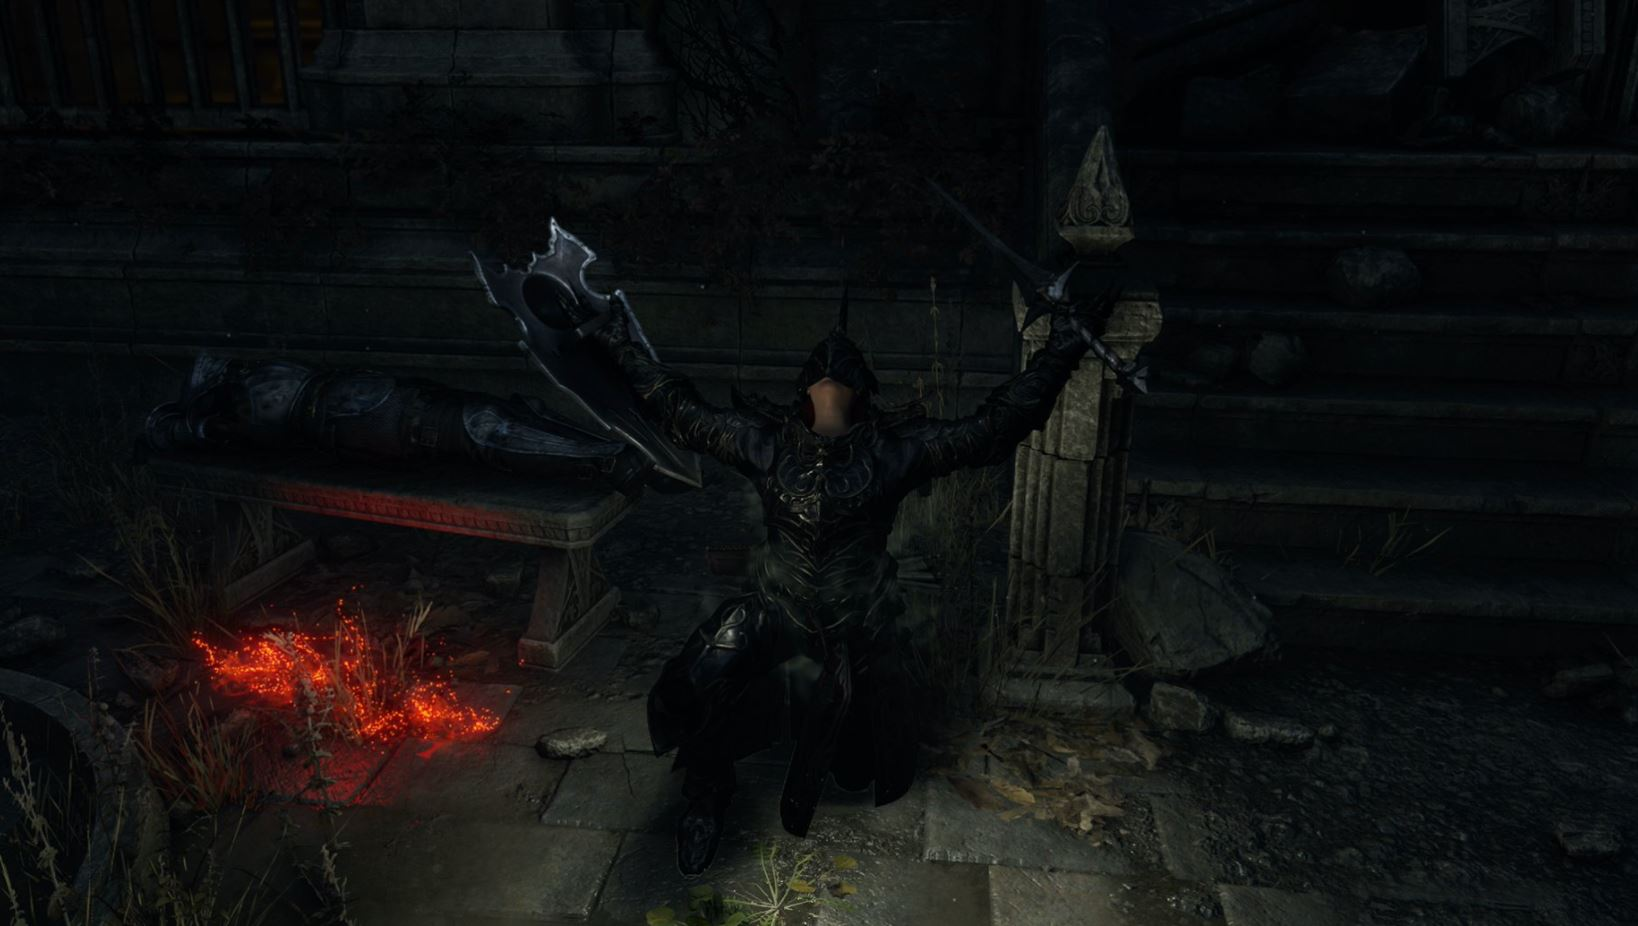 demons-souls-players-open-the-locked-door-to-find-a-fan-requested-armor-set-you-can-equip